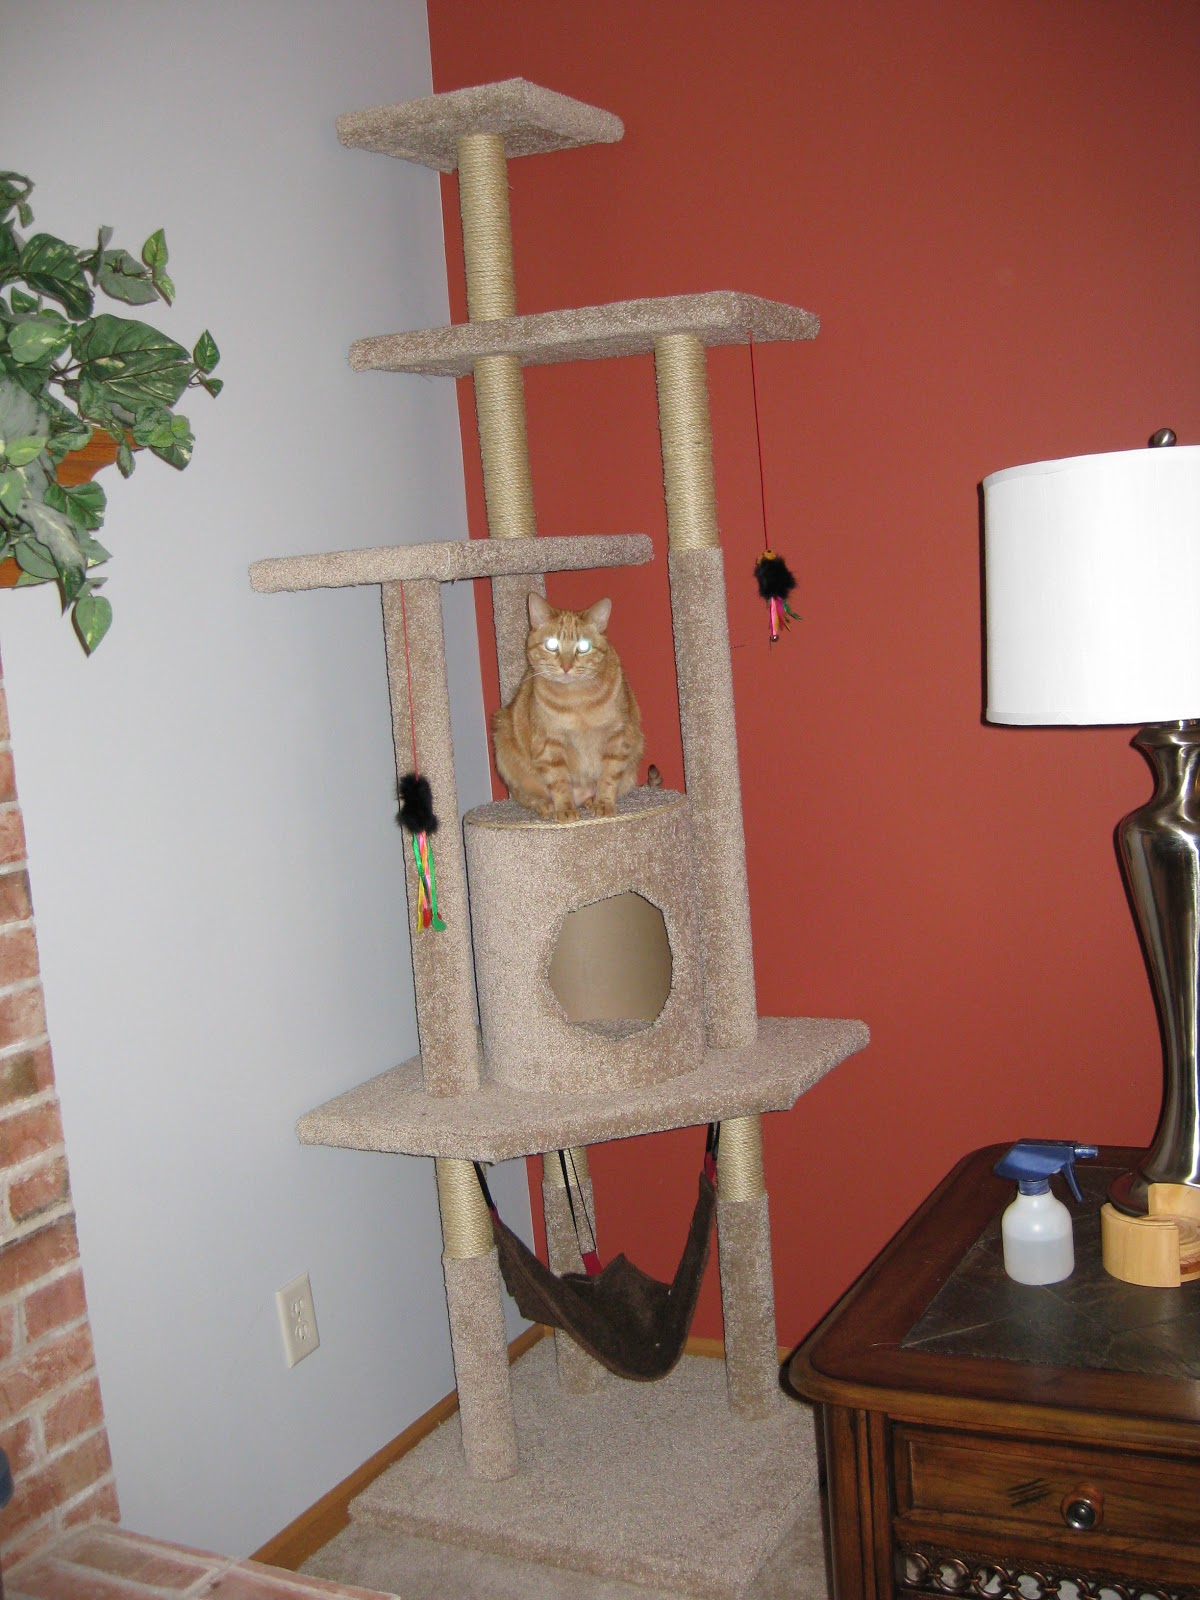 DIY carpet and jute covered cat tree with a house